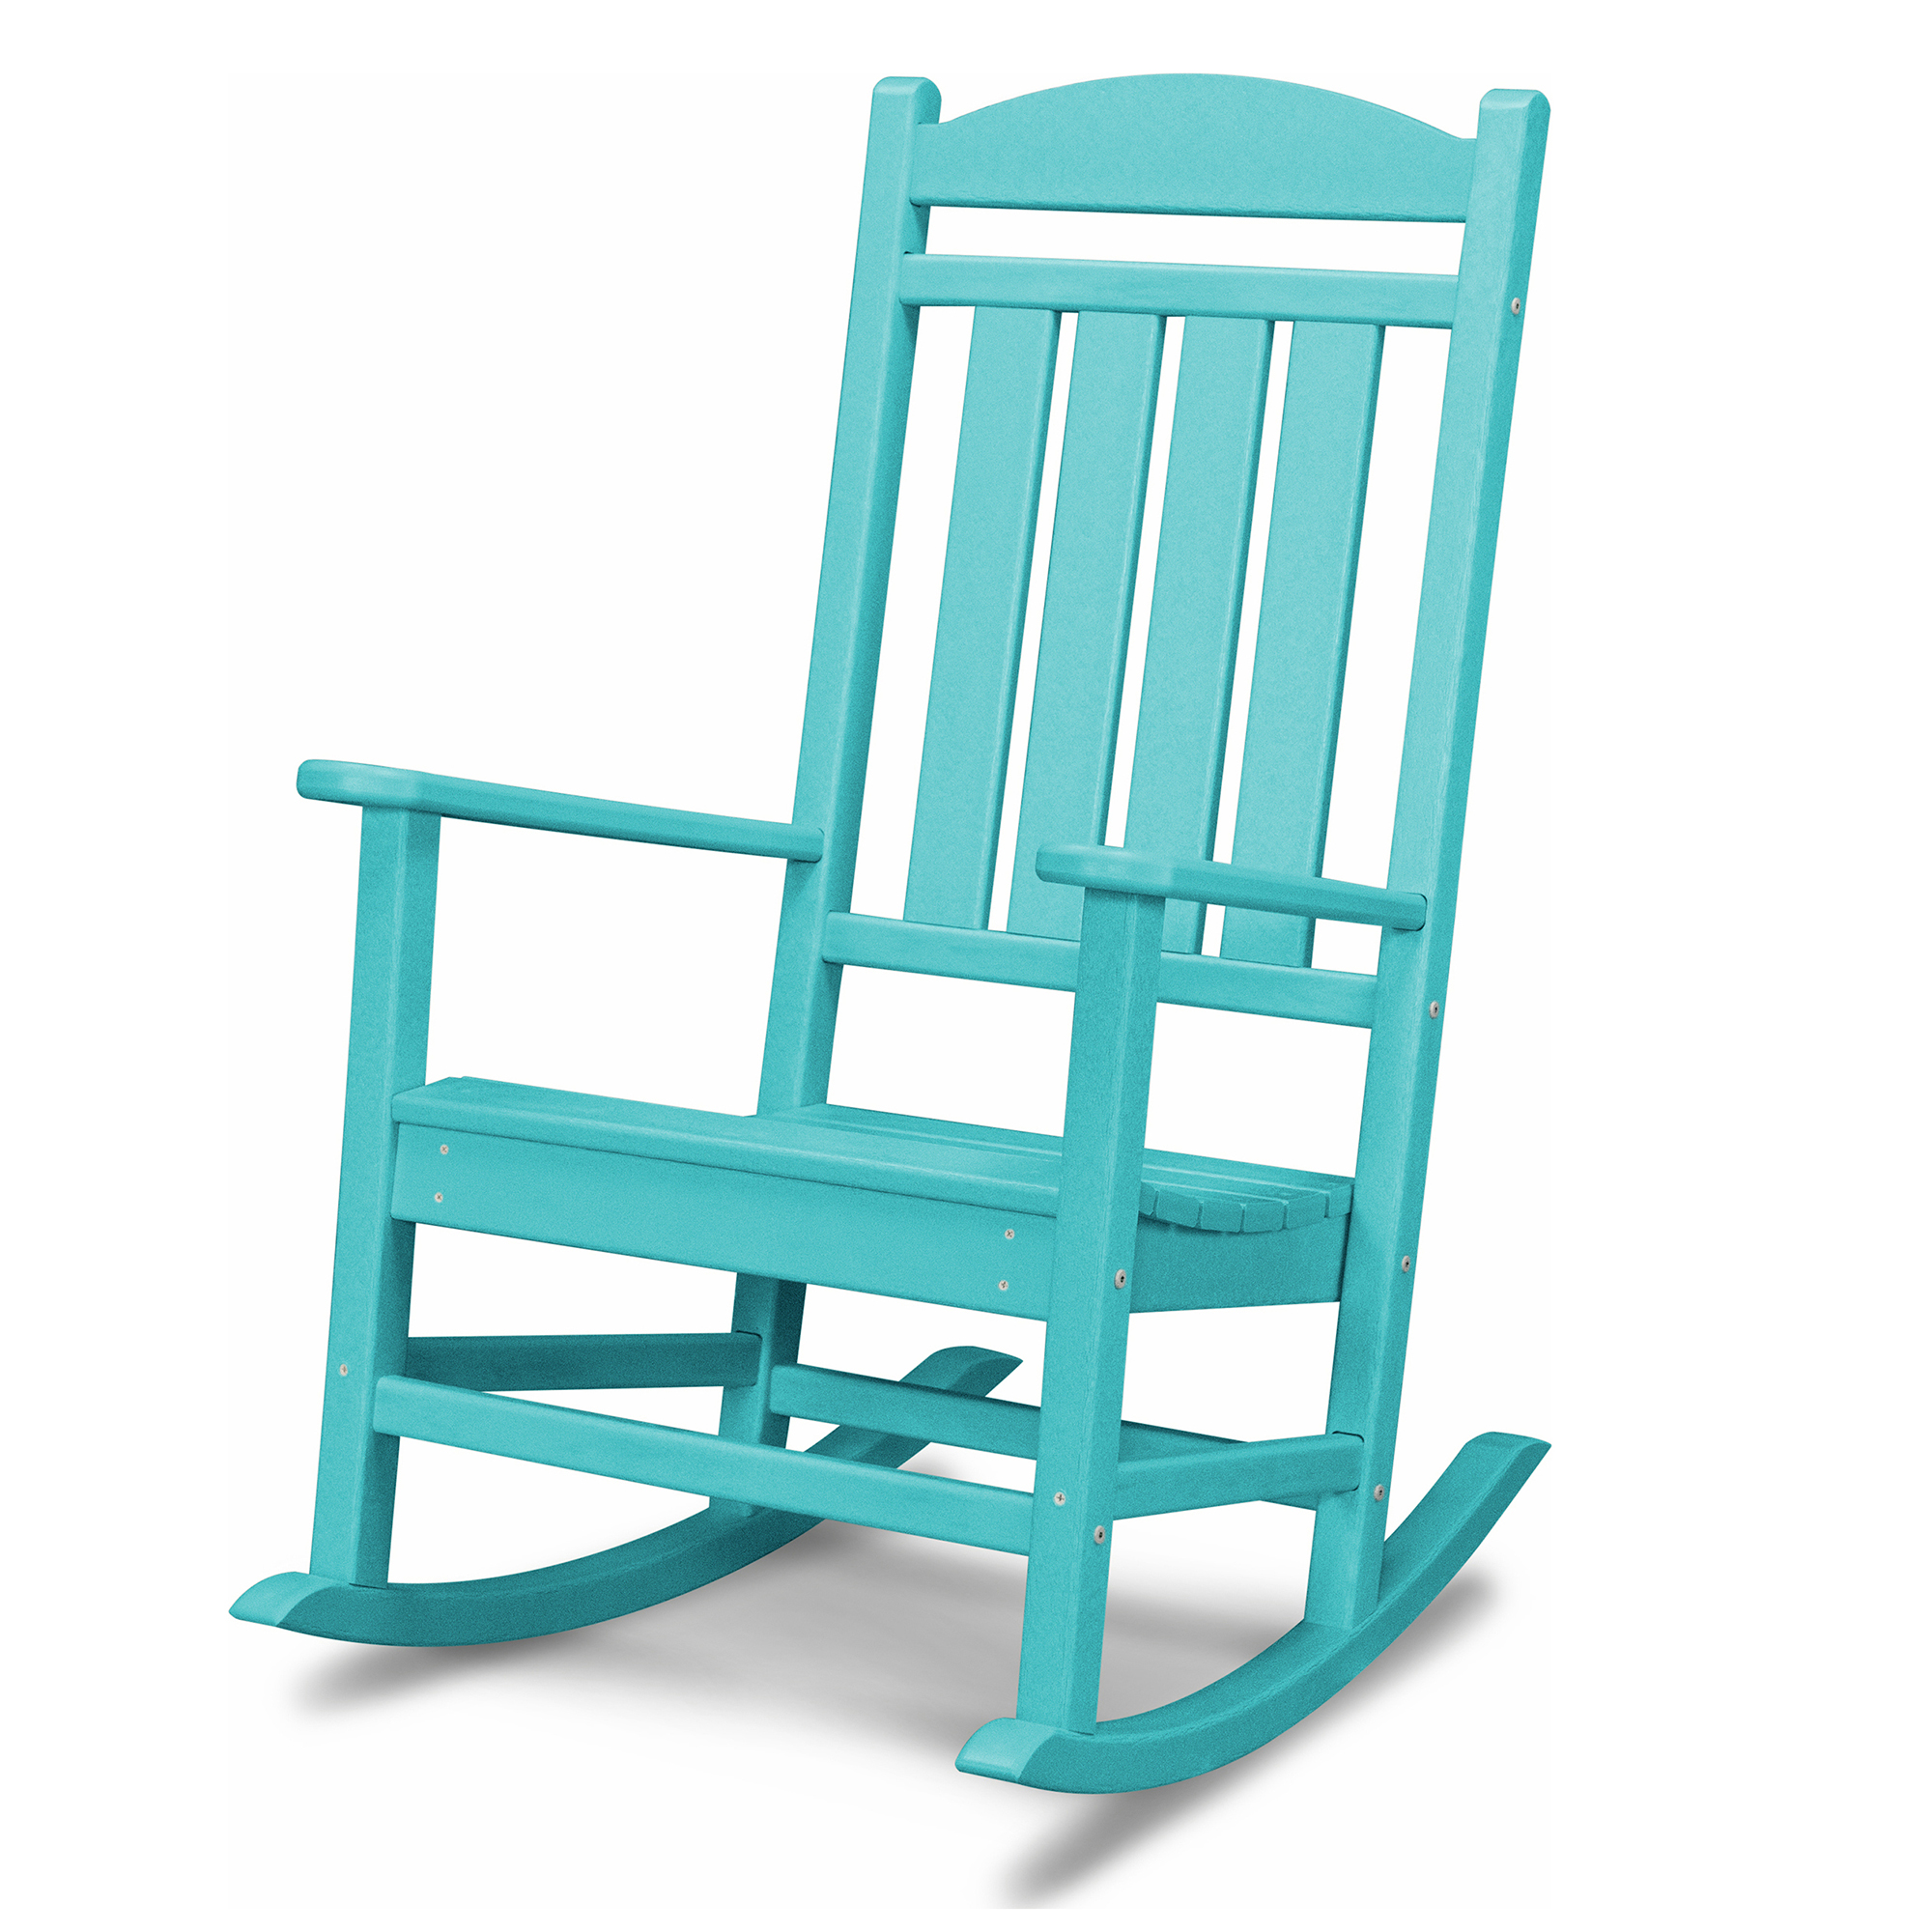 POLYWOOD Reg; All Weather Presidential Rocker   Home Furniture   Outdoor  Furniture   Rocking Chairs   Cracker Barrel Old Country Store   Cracker  Barrel Old ...